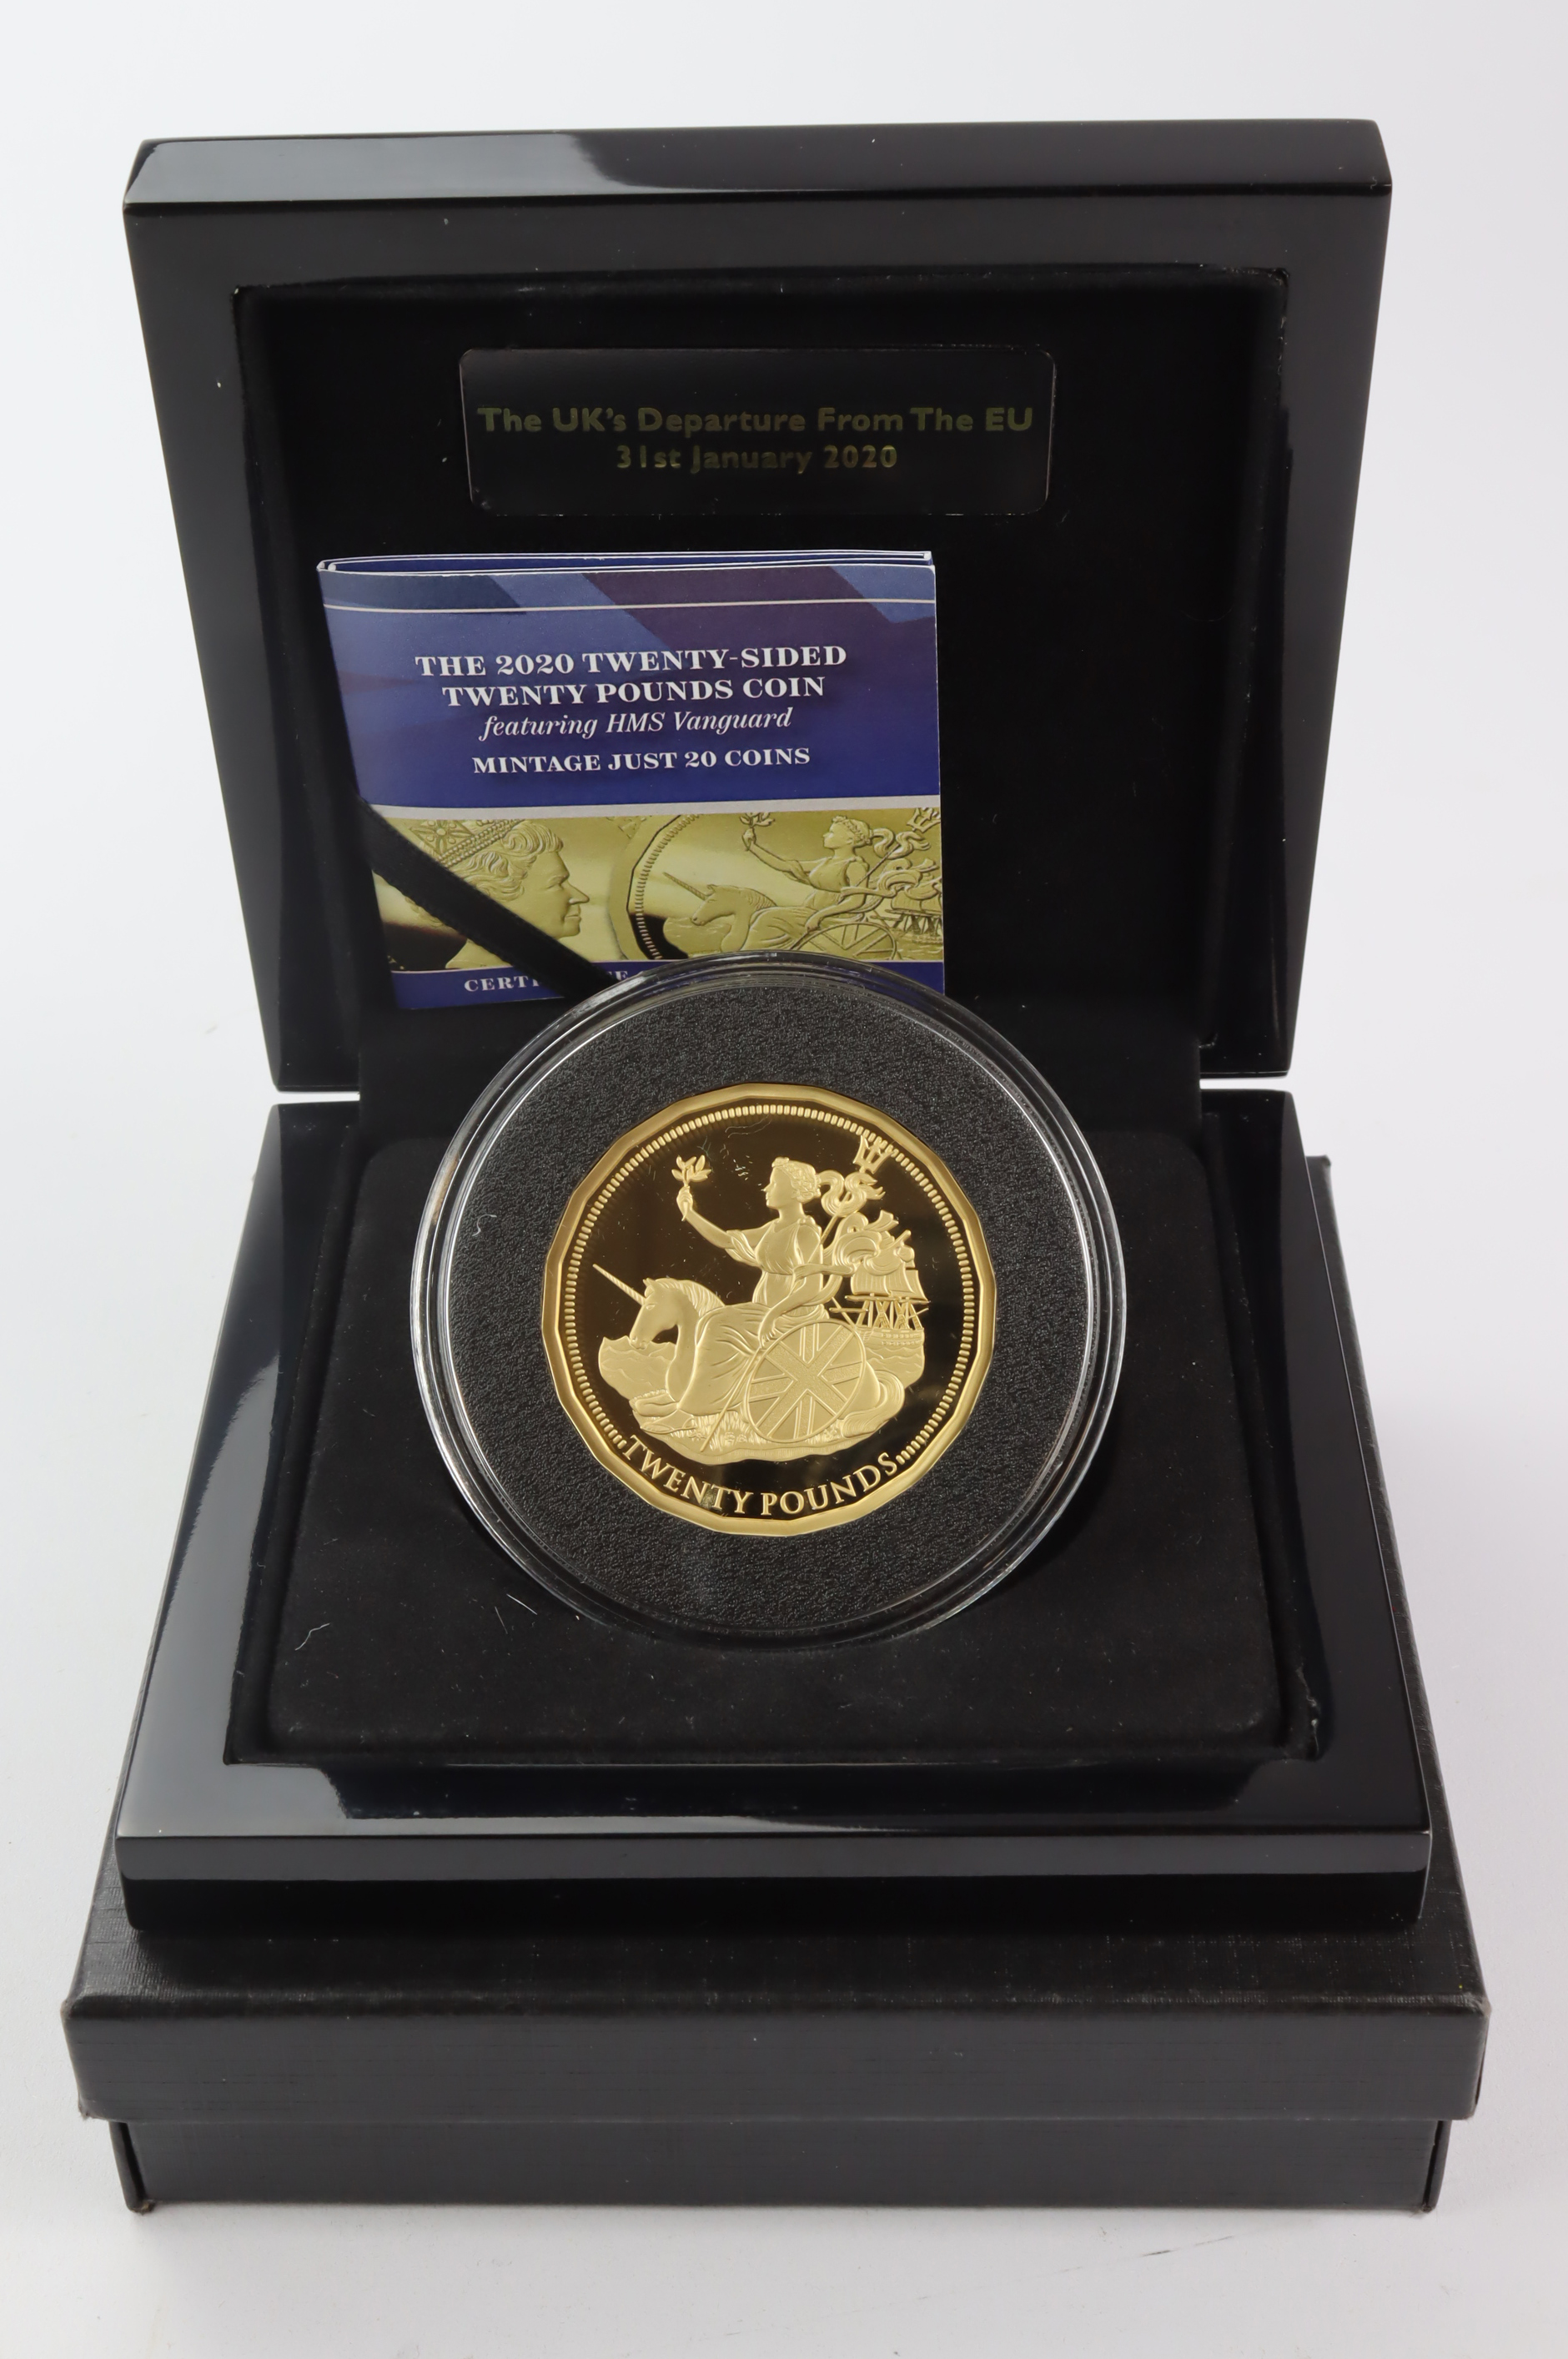 Tristan Da Cunha Twenty Pounds 2020 struck in 22ct gold (2.5oz) to a proof finish. Mintage of only